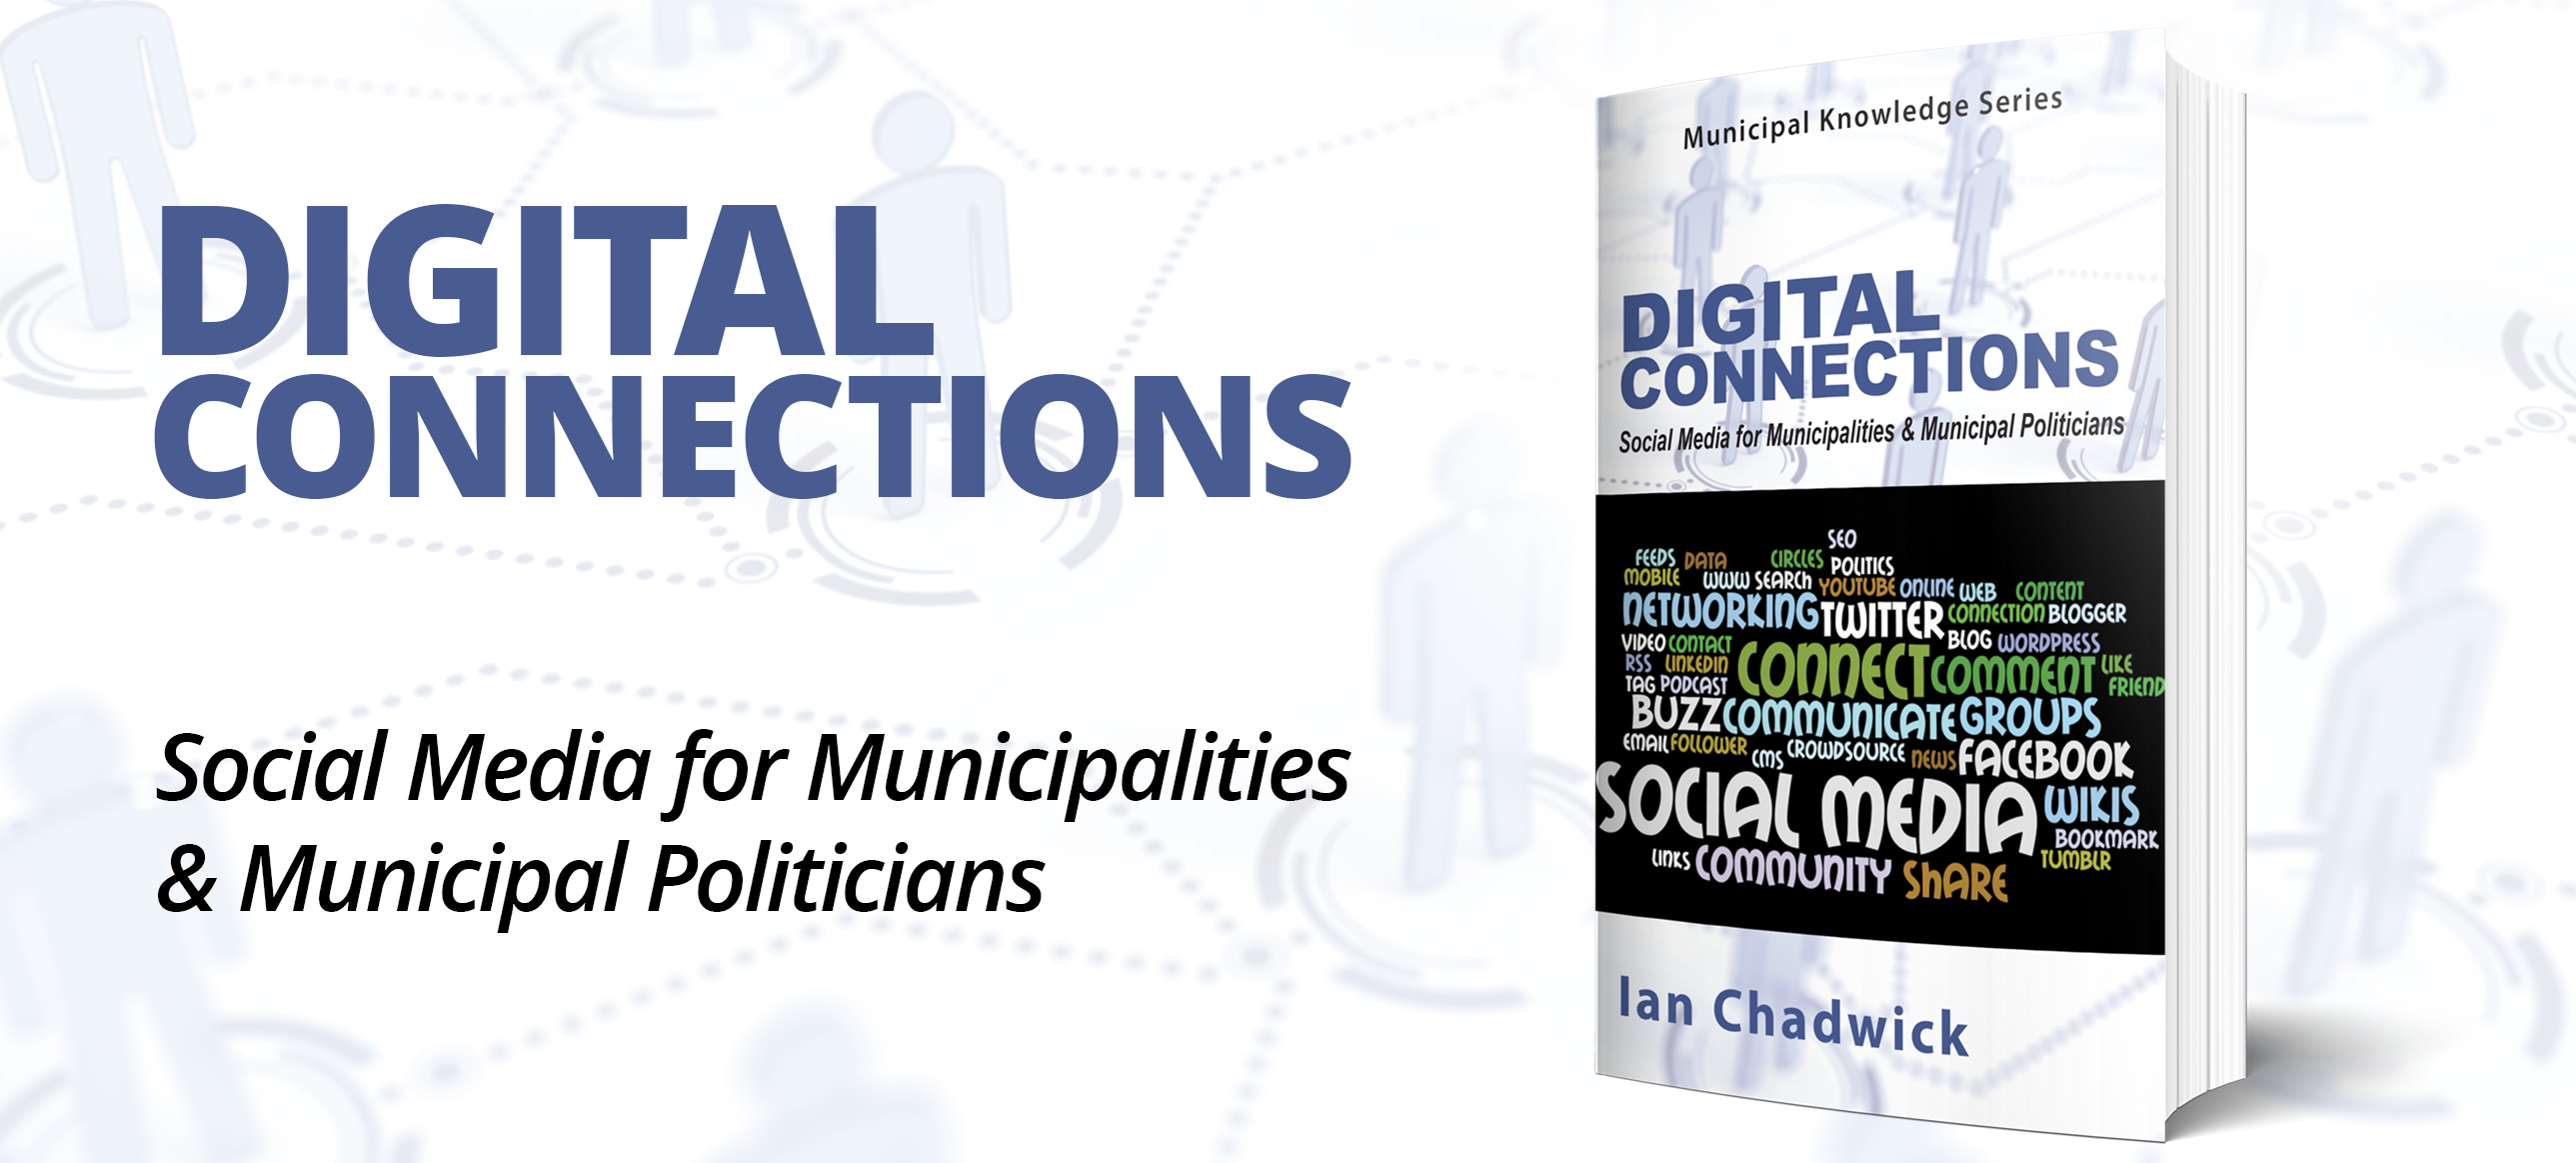 Digital Connections book cover